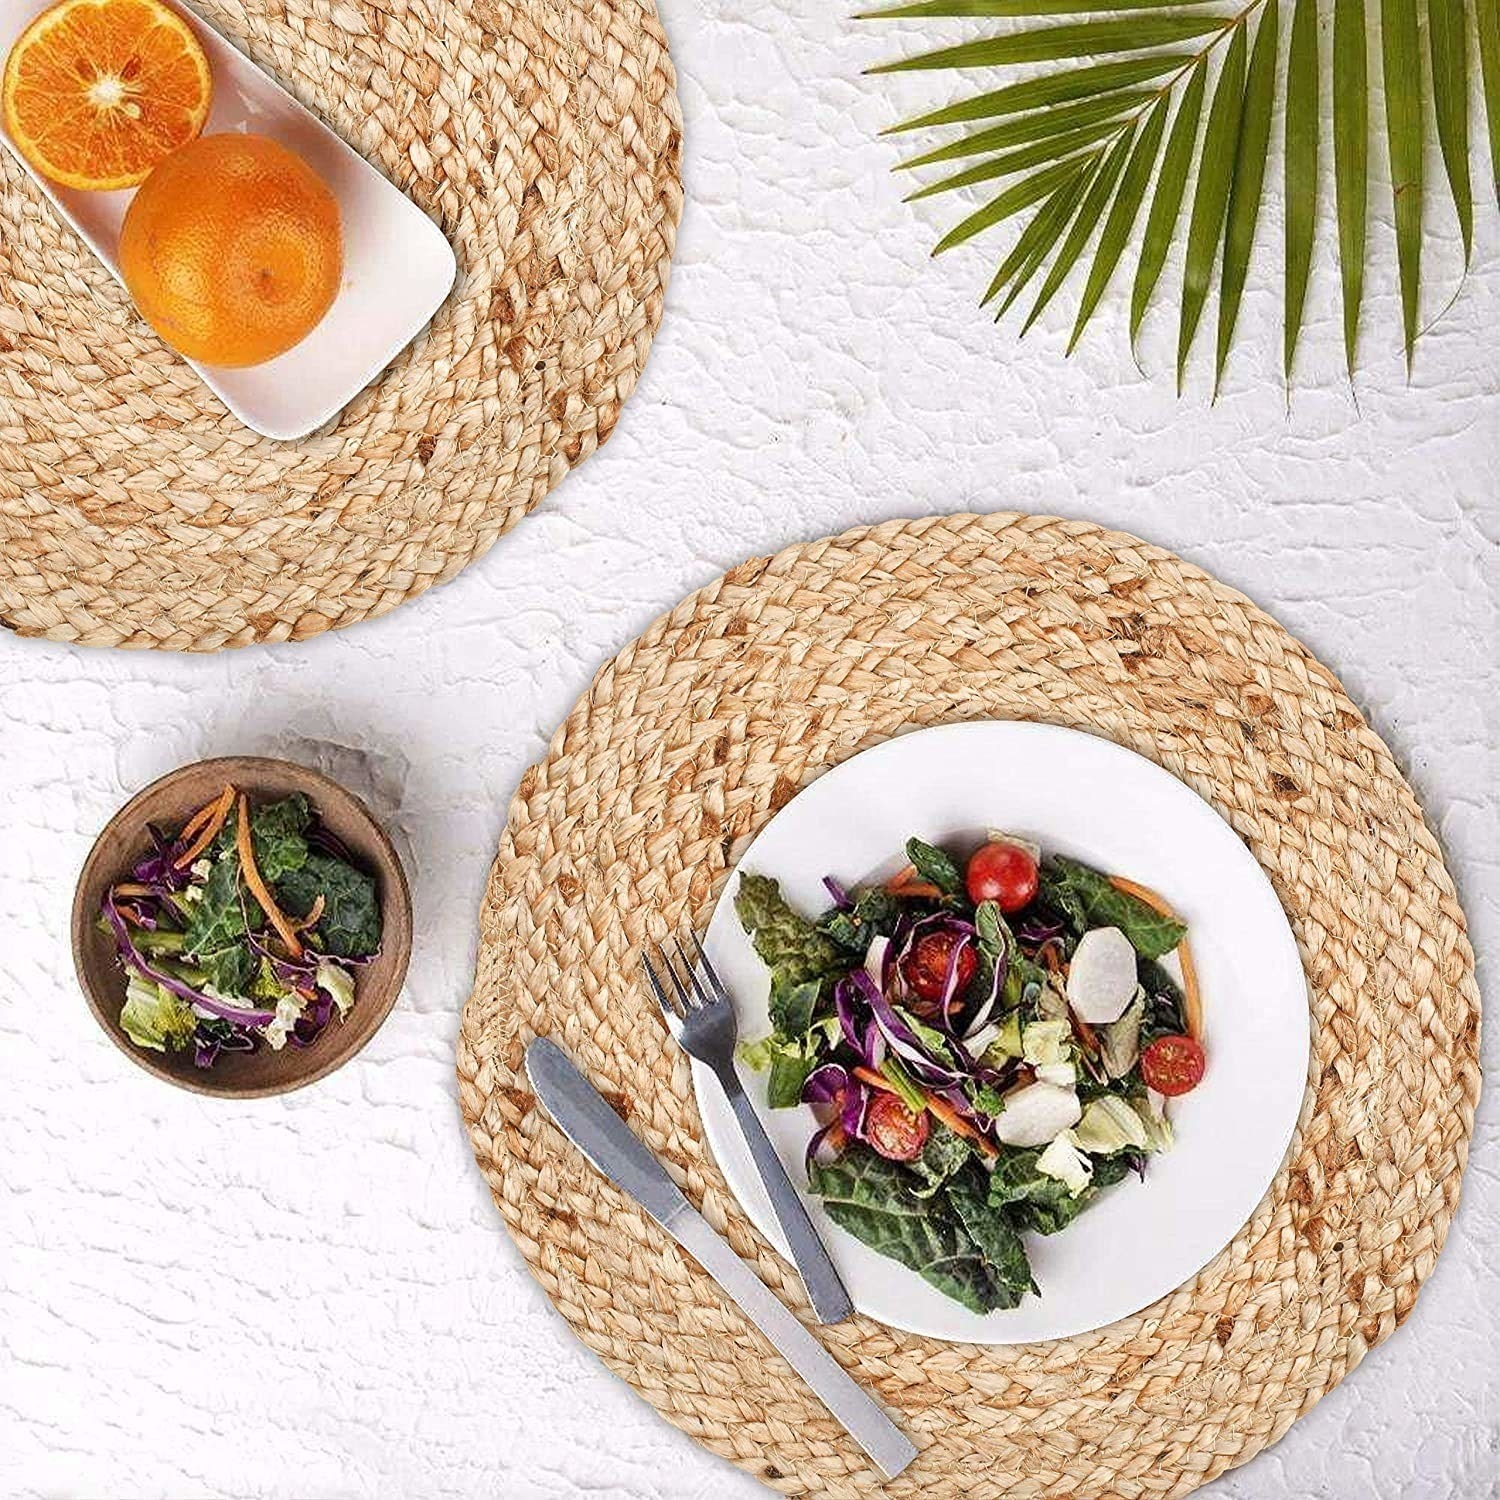 The round jute mats with two plates of food containing salad, a fork and knife and some oranges on another plate placed on a white background